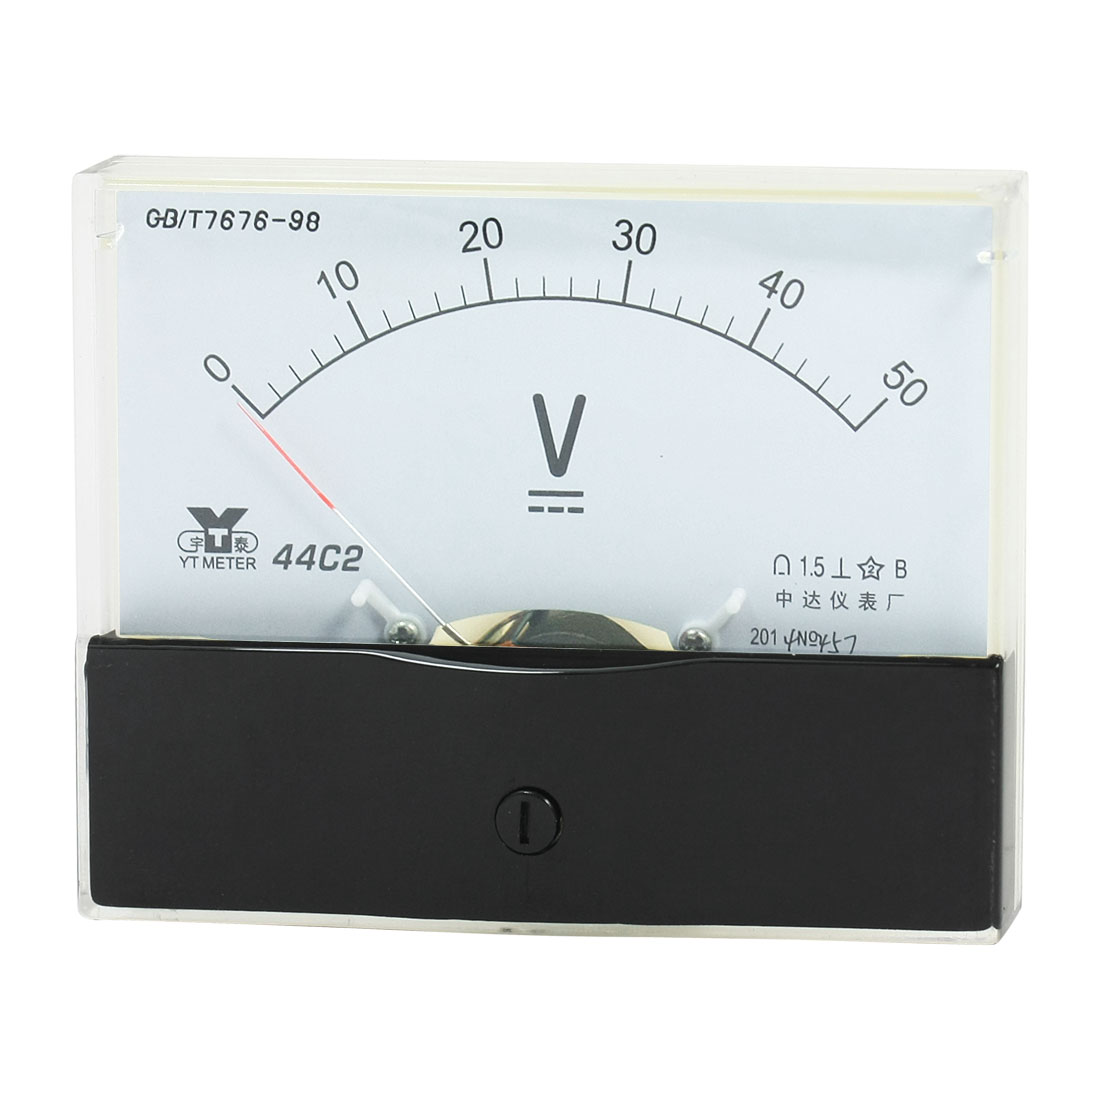 Rectangle Measurement Tool Analog Panel Voltmeter Volt Meter DC 0 - 50V Measuring Range 44C2